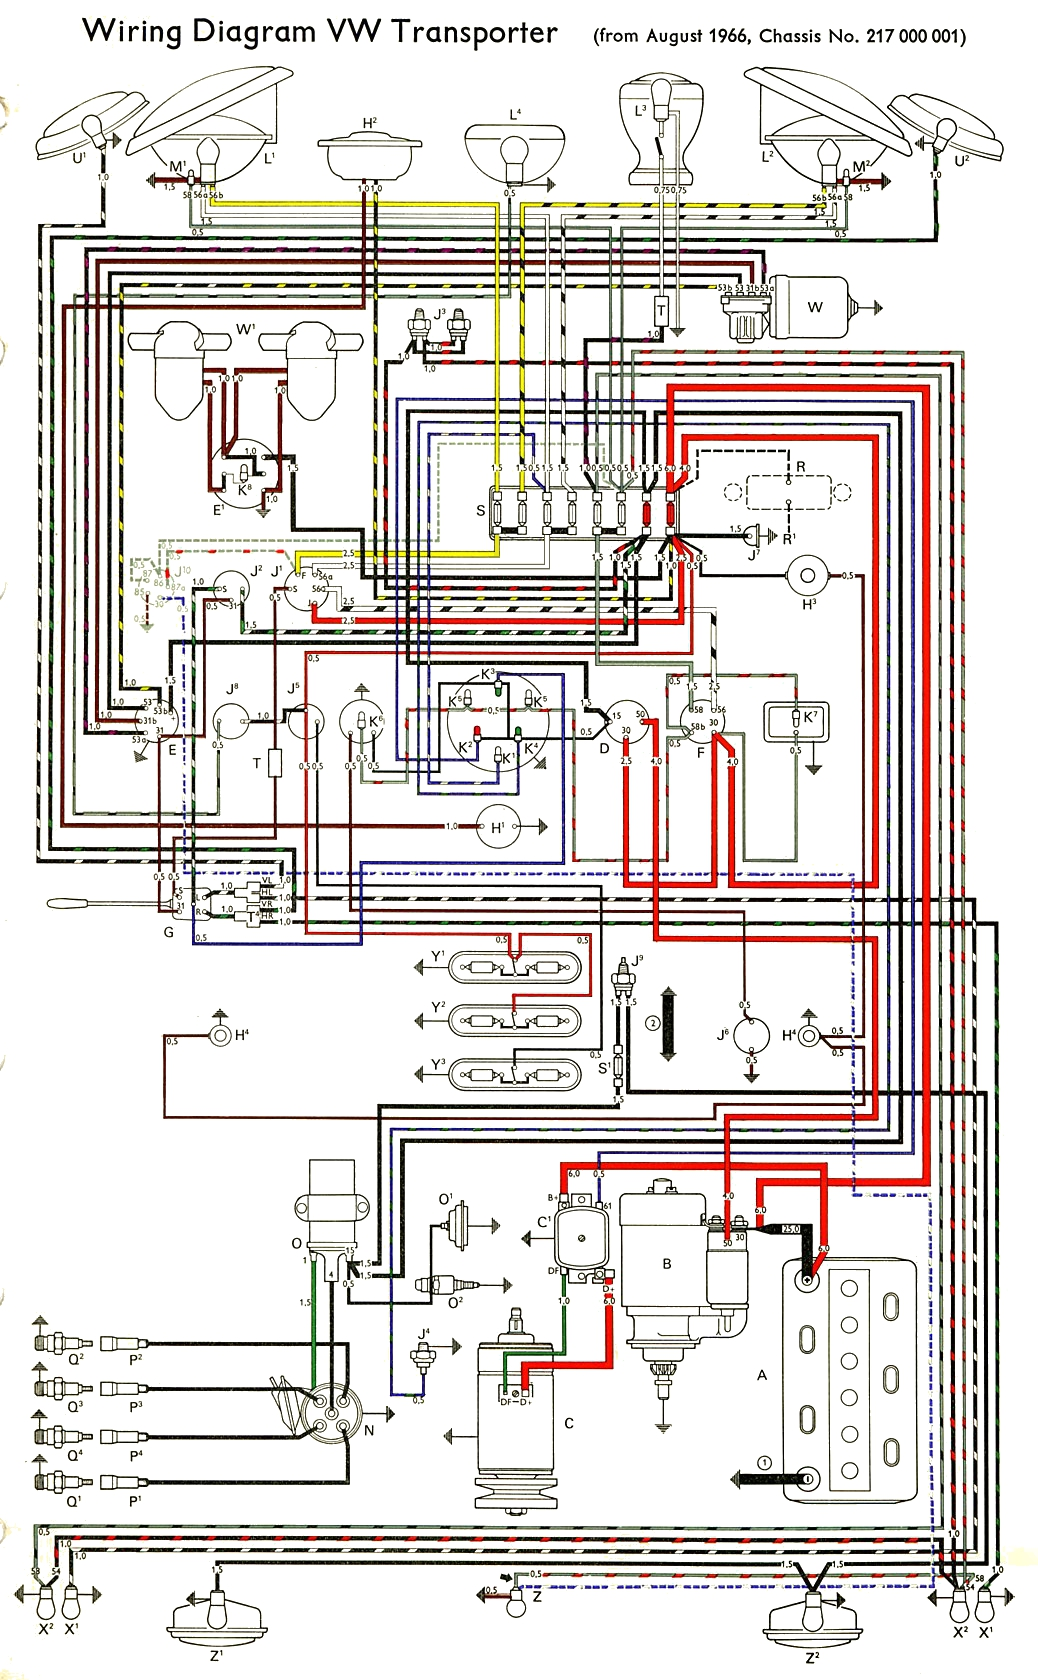 1963 Vw Beetle Wiring Harness | Wiring Diagram  Vw Dome Light Wiring Diagram on 1957 vw wiring diagram, 1970 vw beetle wiring diagram, 1960 vw steering, 1960 vw headlights, 1960 vw fuel tank, 1960 vw engine, 67 vw wiring diagram, 1979 vw beetle wiring diagram, 1968 vw beetle wiring diagram, 1960 vw motor, 1973 vw wiring diagram, 1972 vw wiring diagram, 70 vw wiring diagram, 1969 vw wiring diagram,